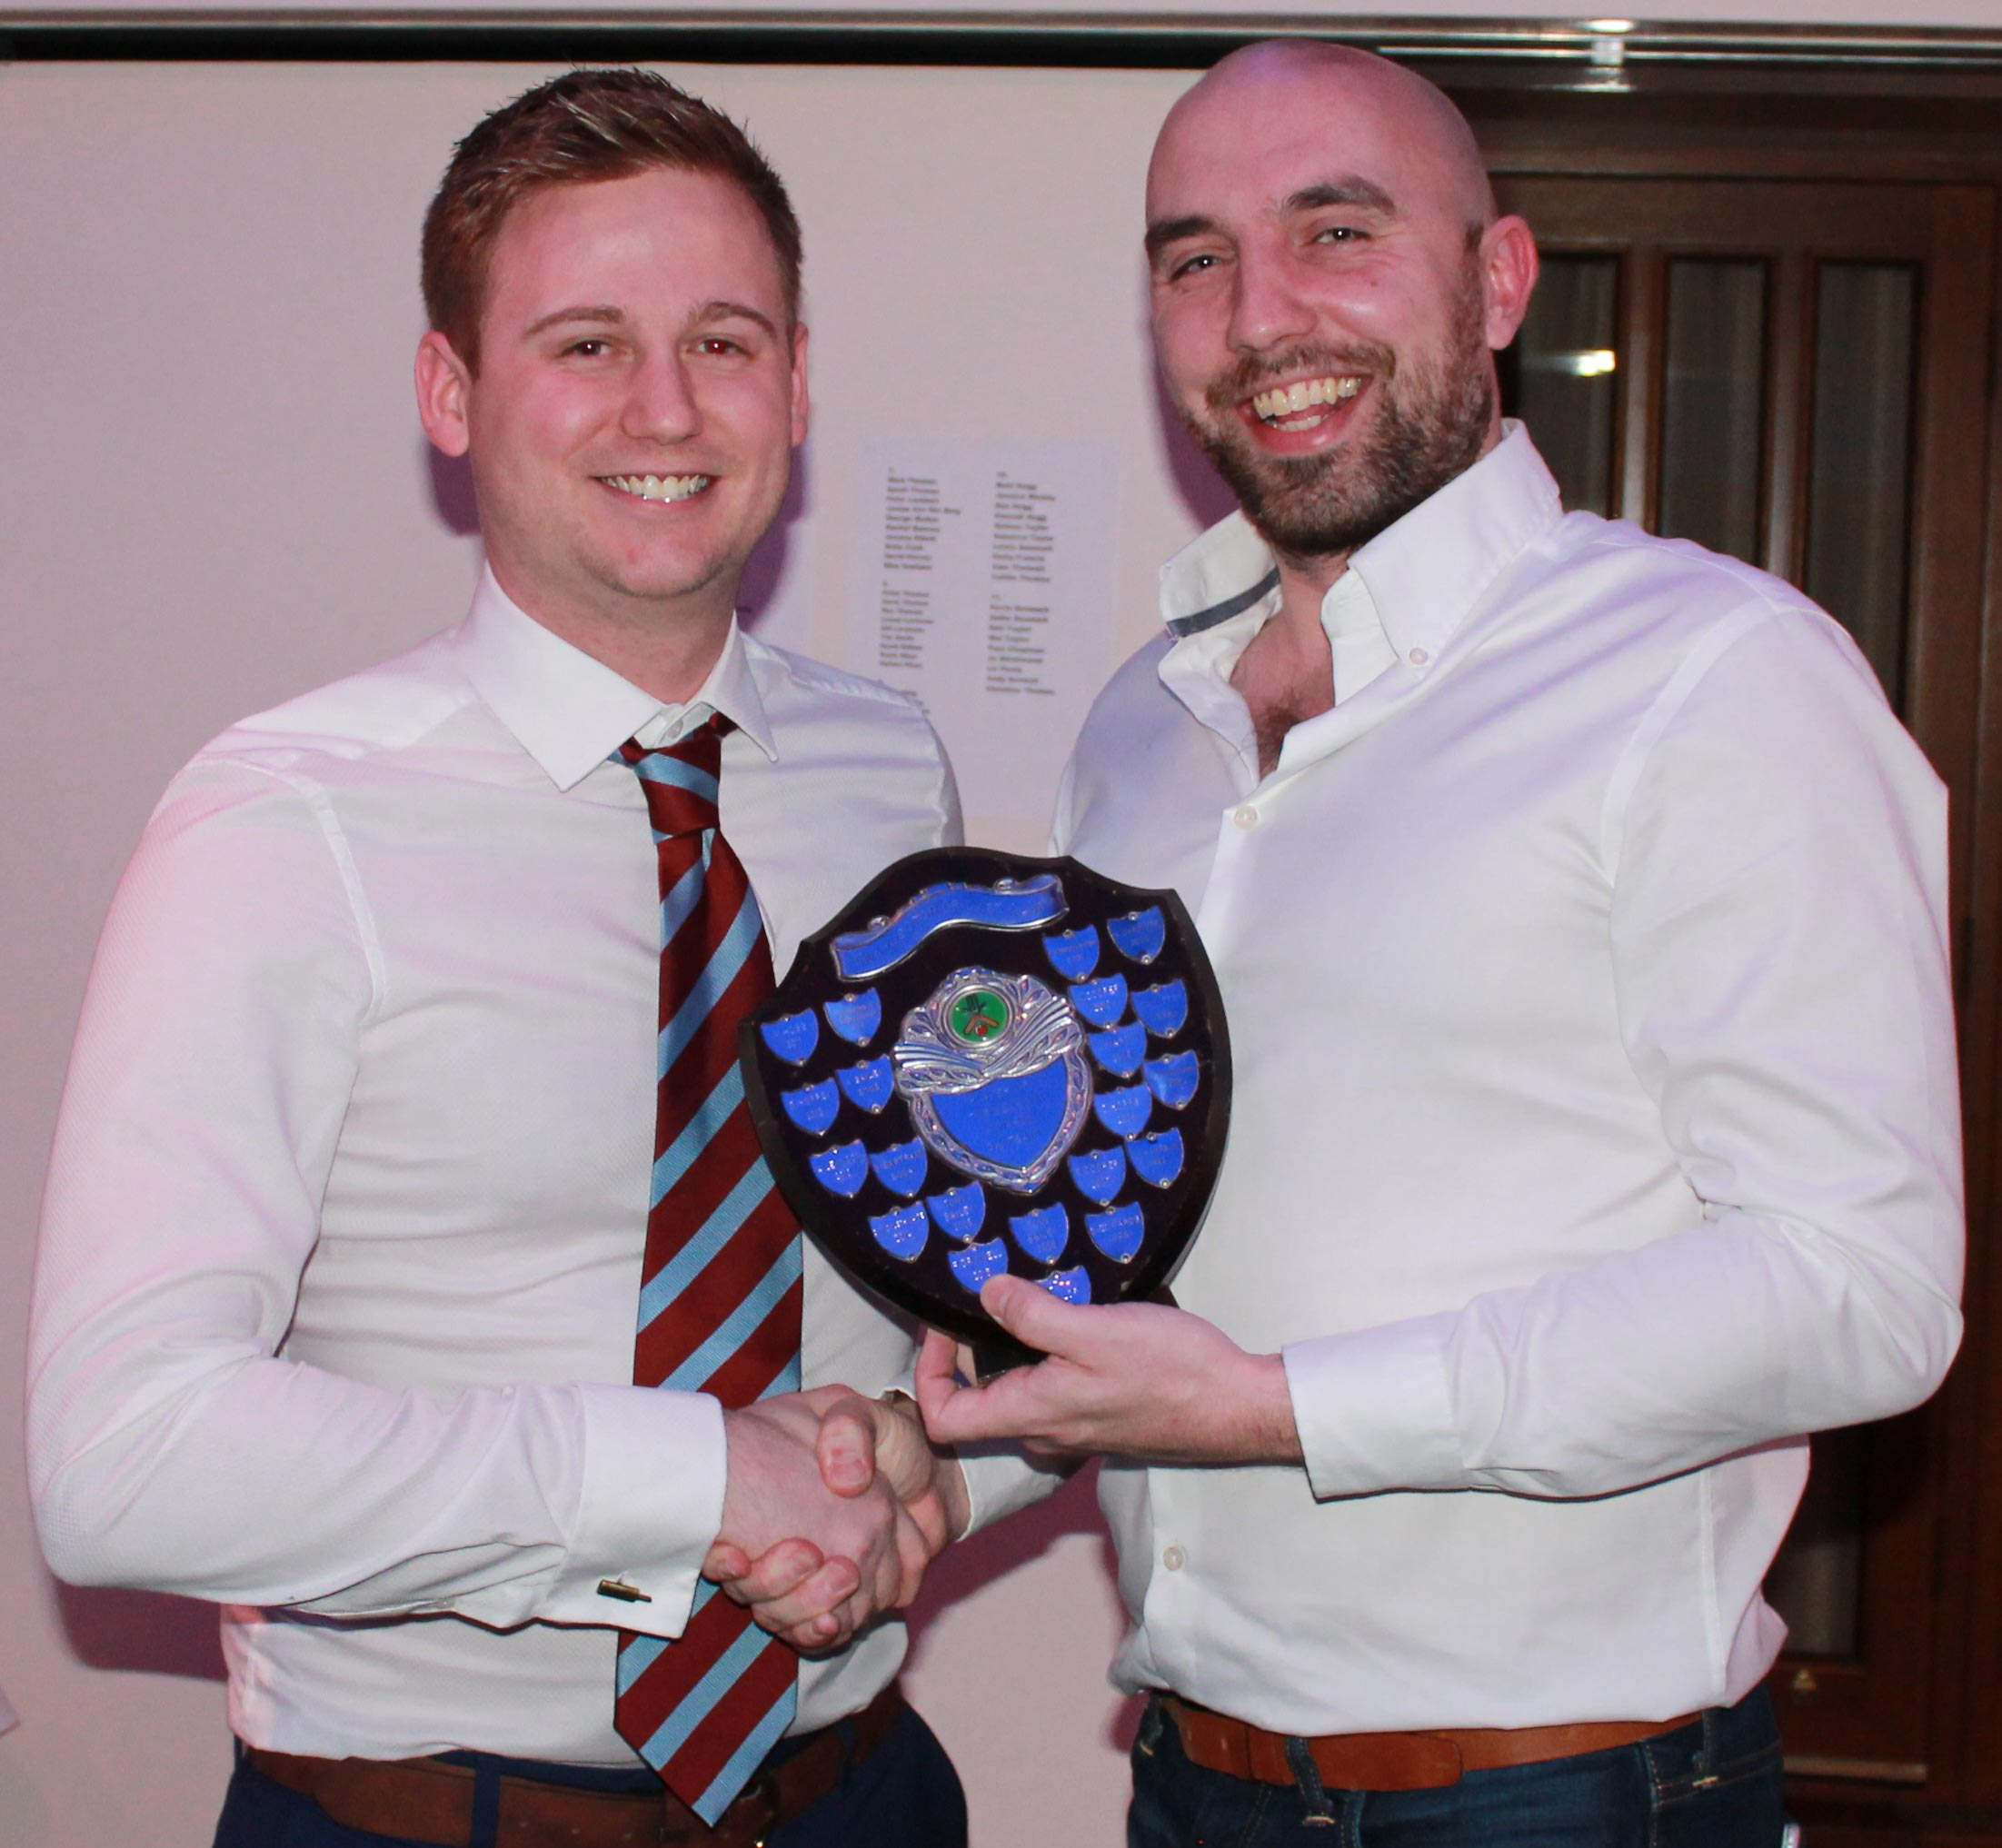 Matt Hogg presents Nathan Taylor with the Bob Read Shield for A XI player of the year.